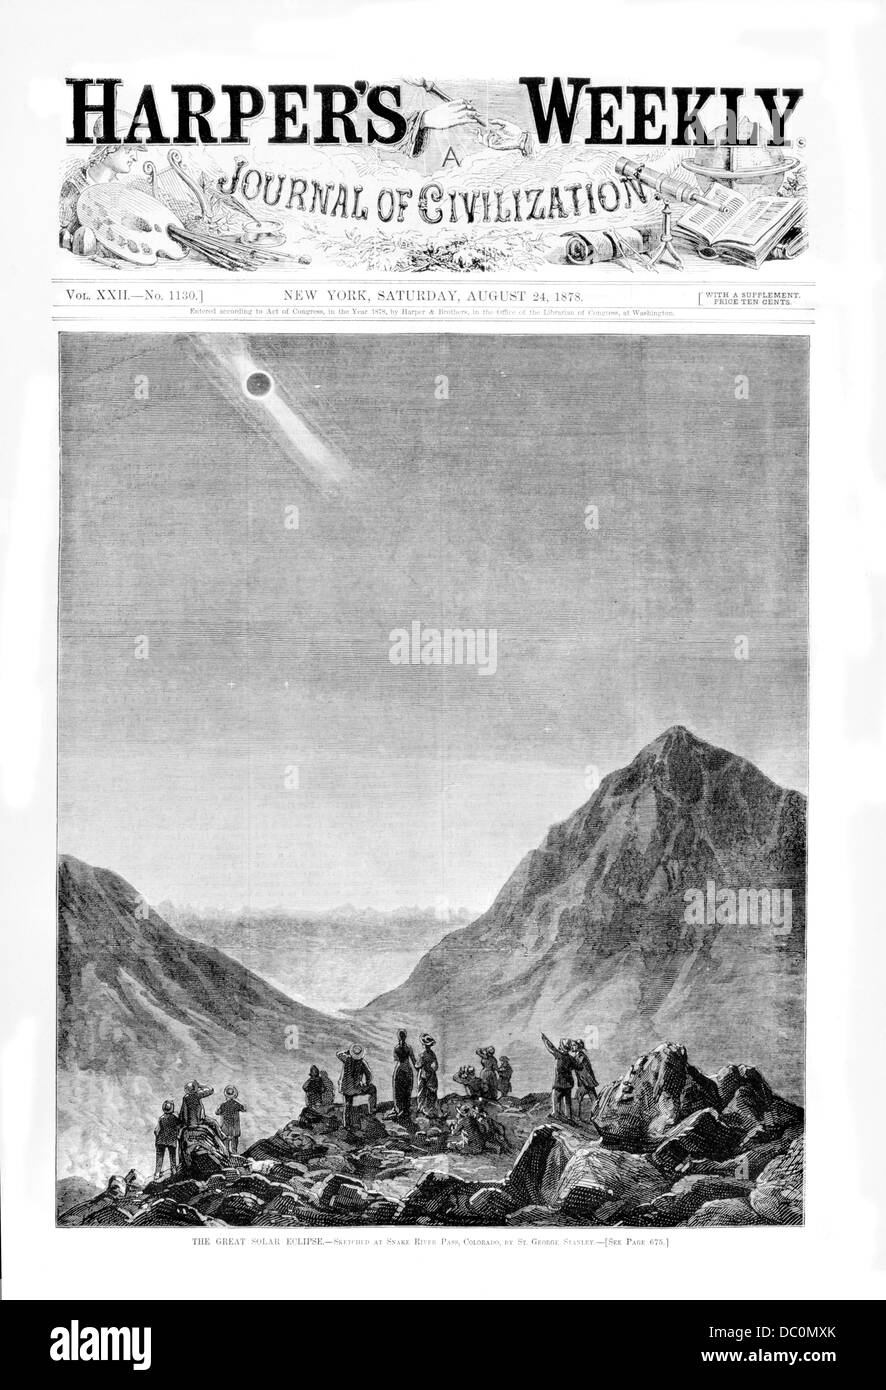 1800s 1870s THE GREAT SOLAR ECLIPSE OF JULY 29 1878 SEEN FROM SNAKE RIVER PASS COLORADO USA IN HARPER'S WEEKLY - Stock Image